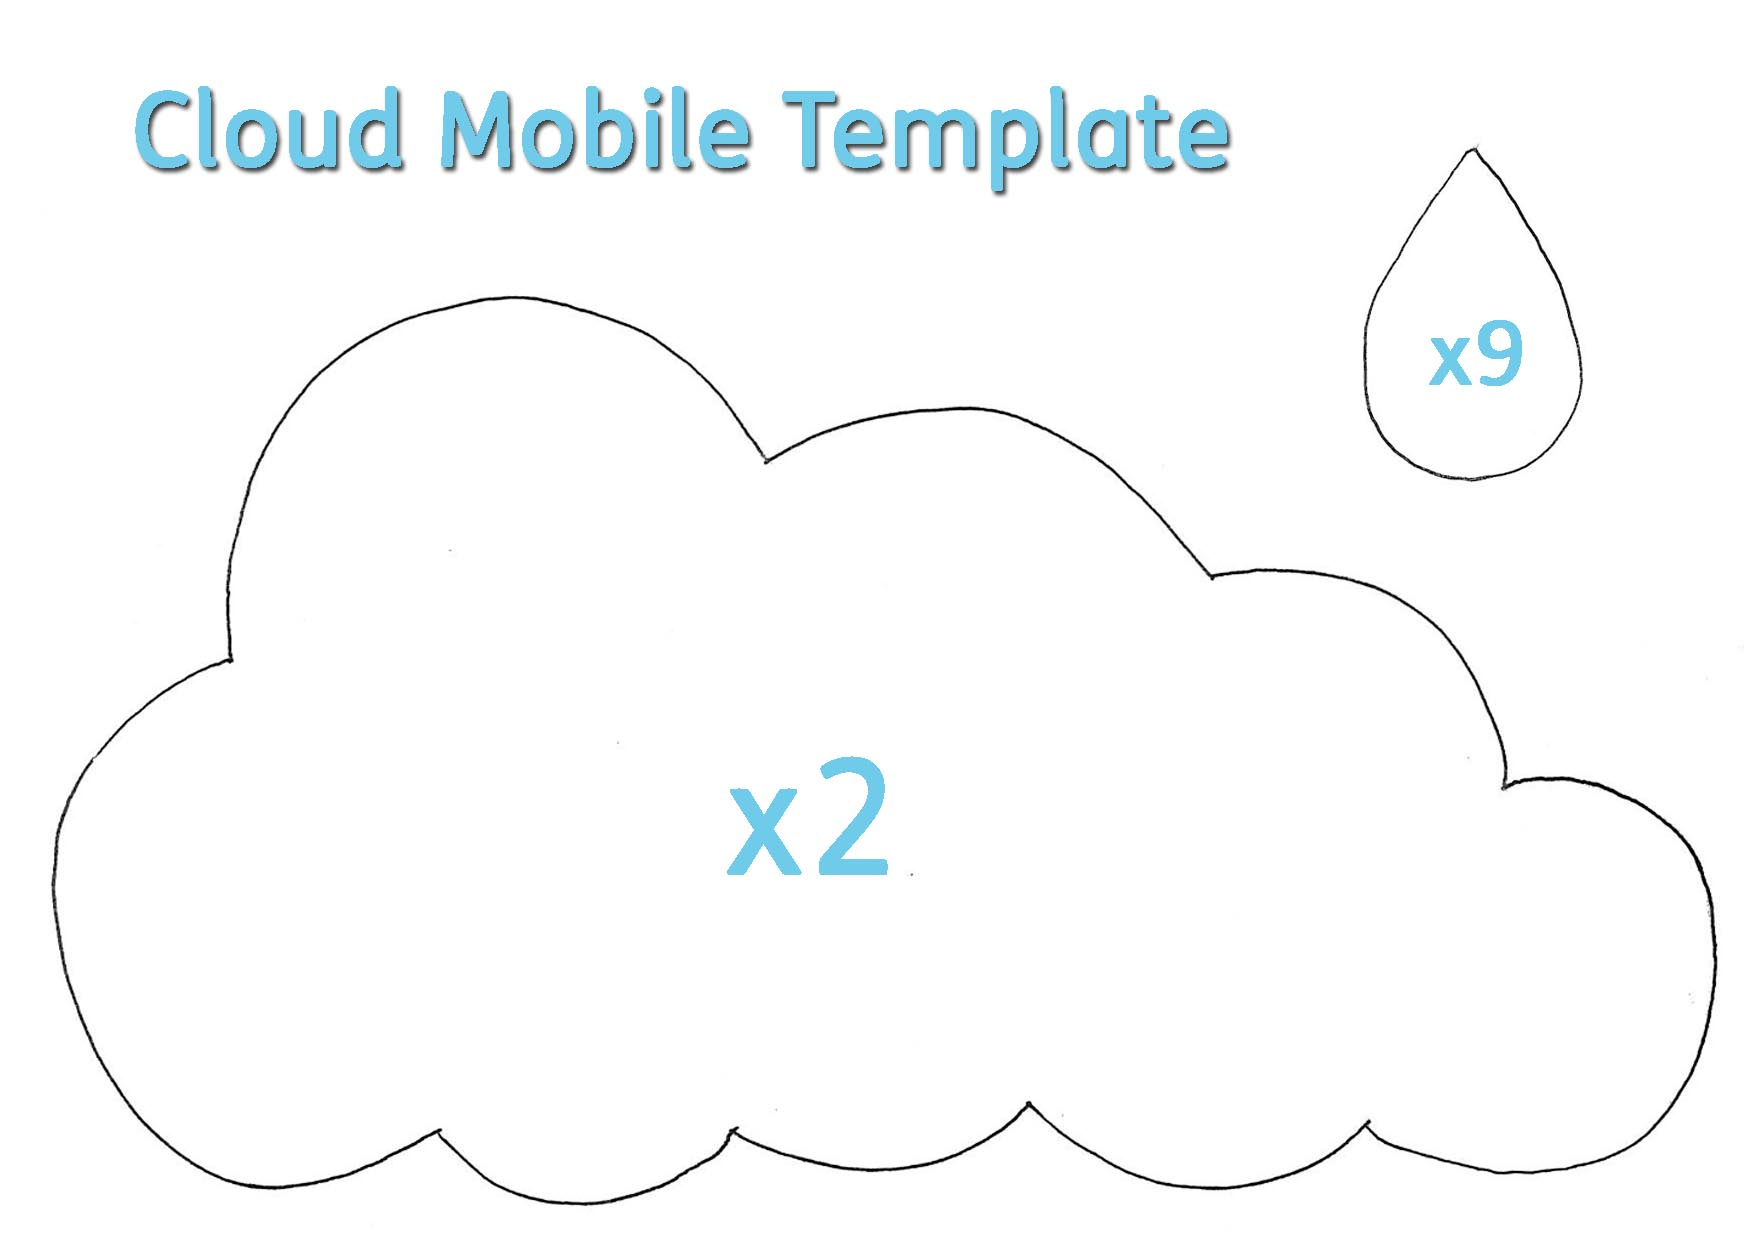 Rain Cloud Template Cloud template